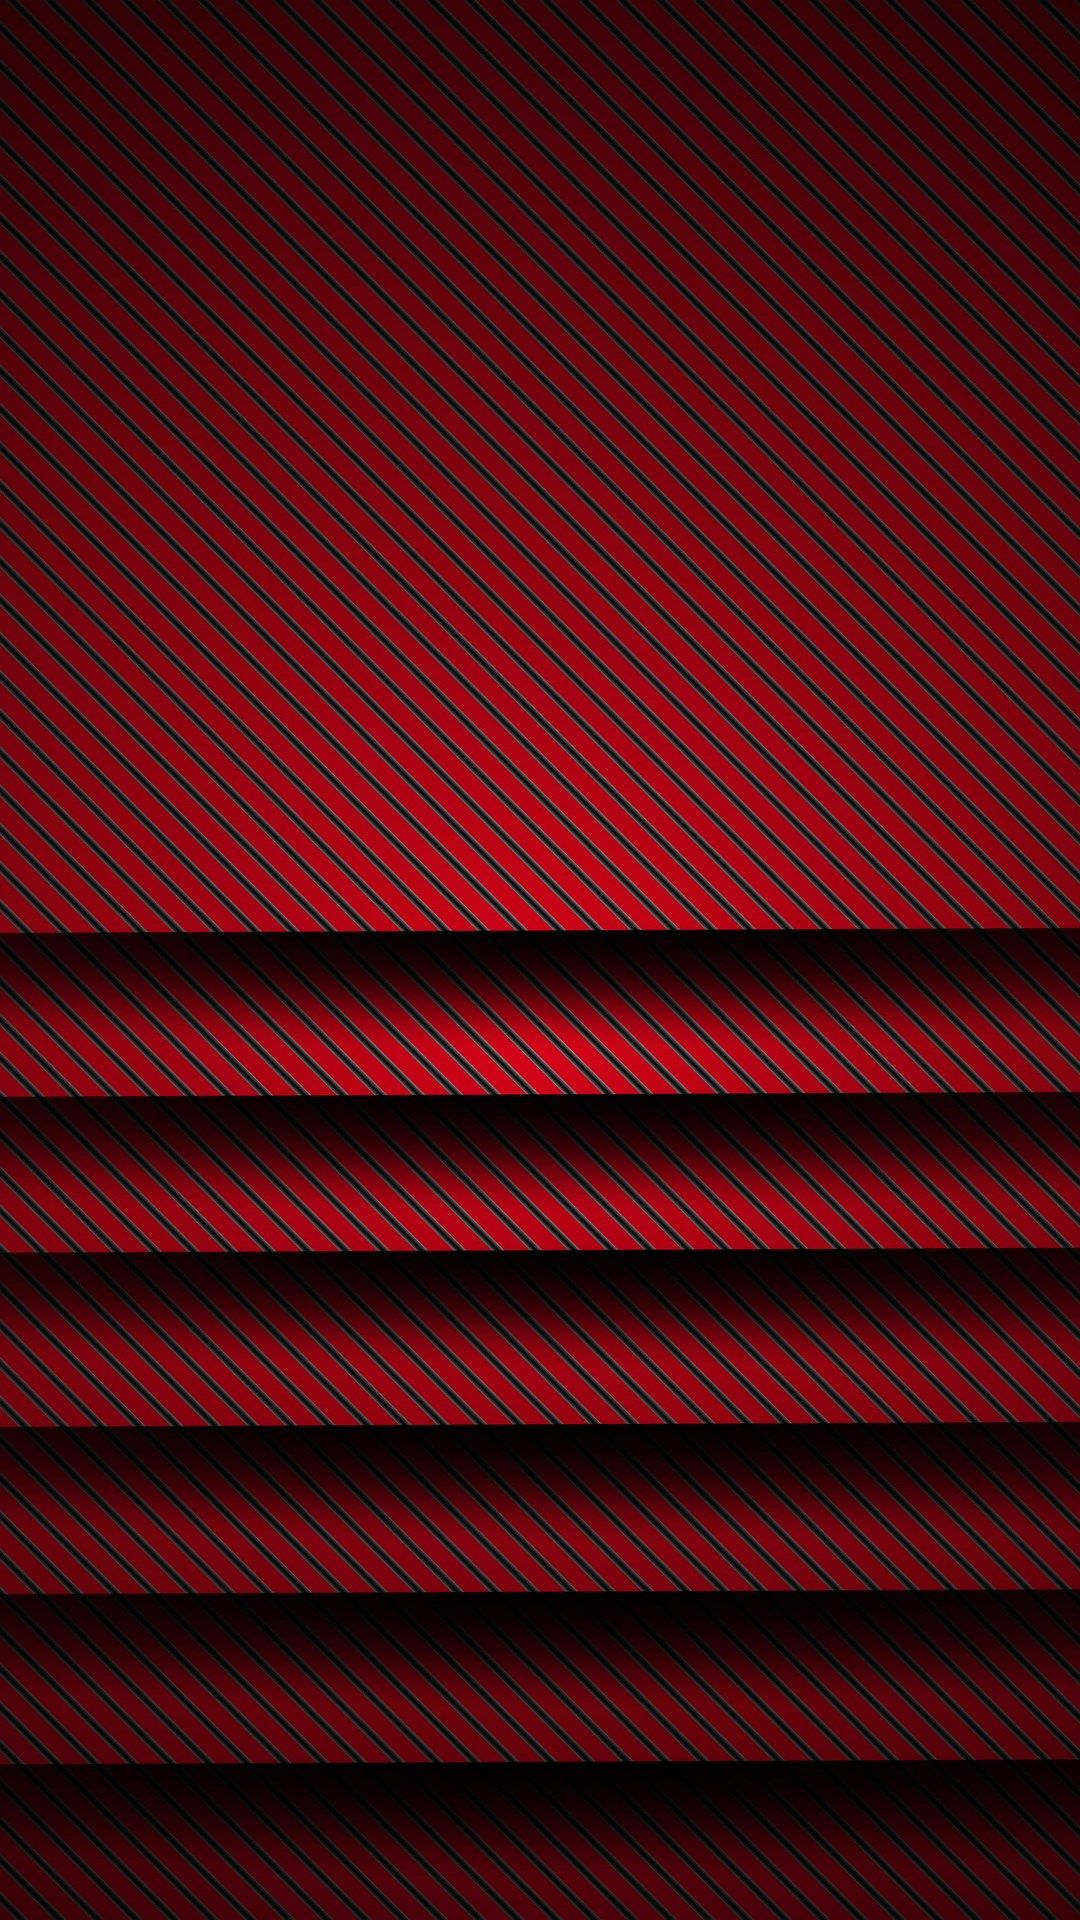 download red paper texturepattern iphone wallpapers tap to see more iphone backgrounds